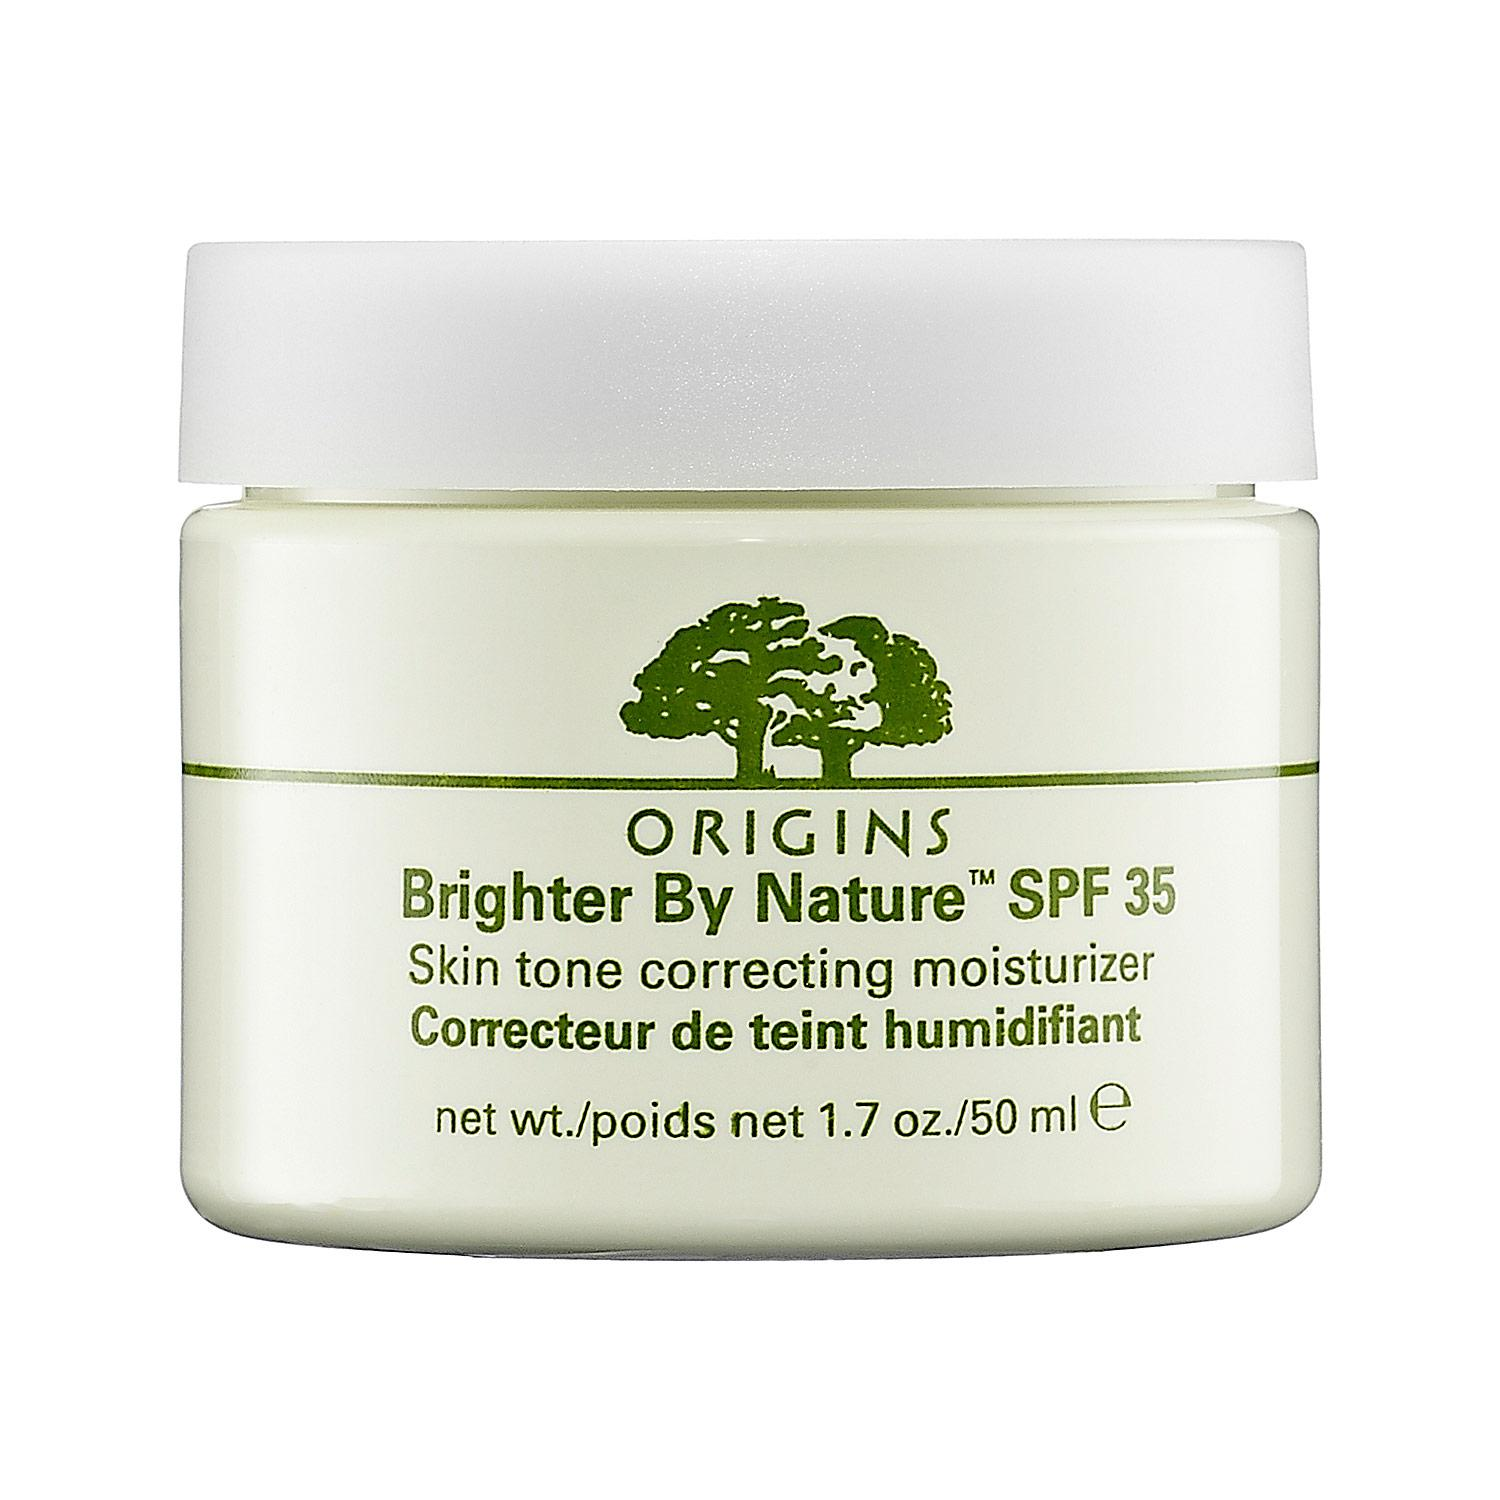 Brighter By Nature™ SPF 35 Skin Tone Correcting Moisturizer